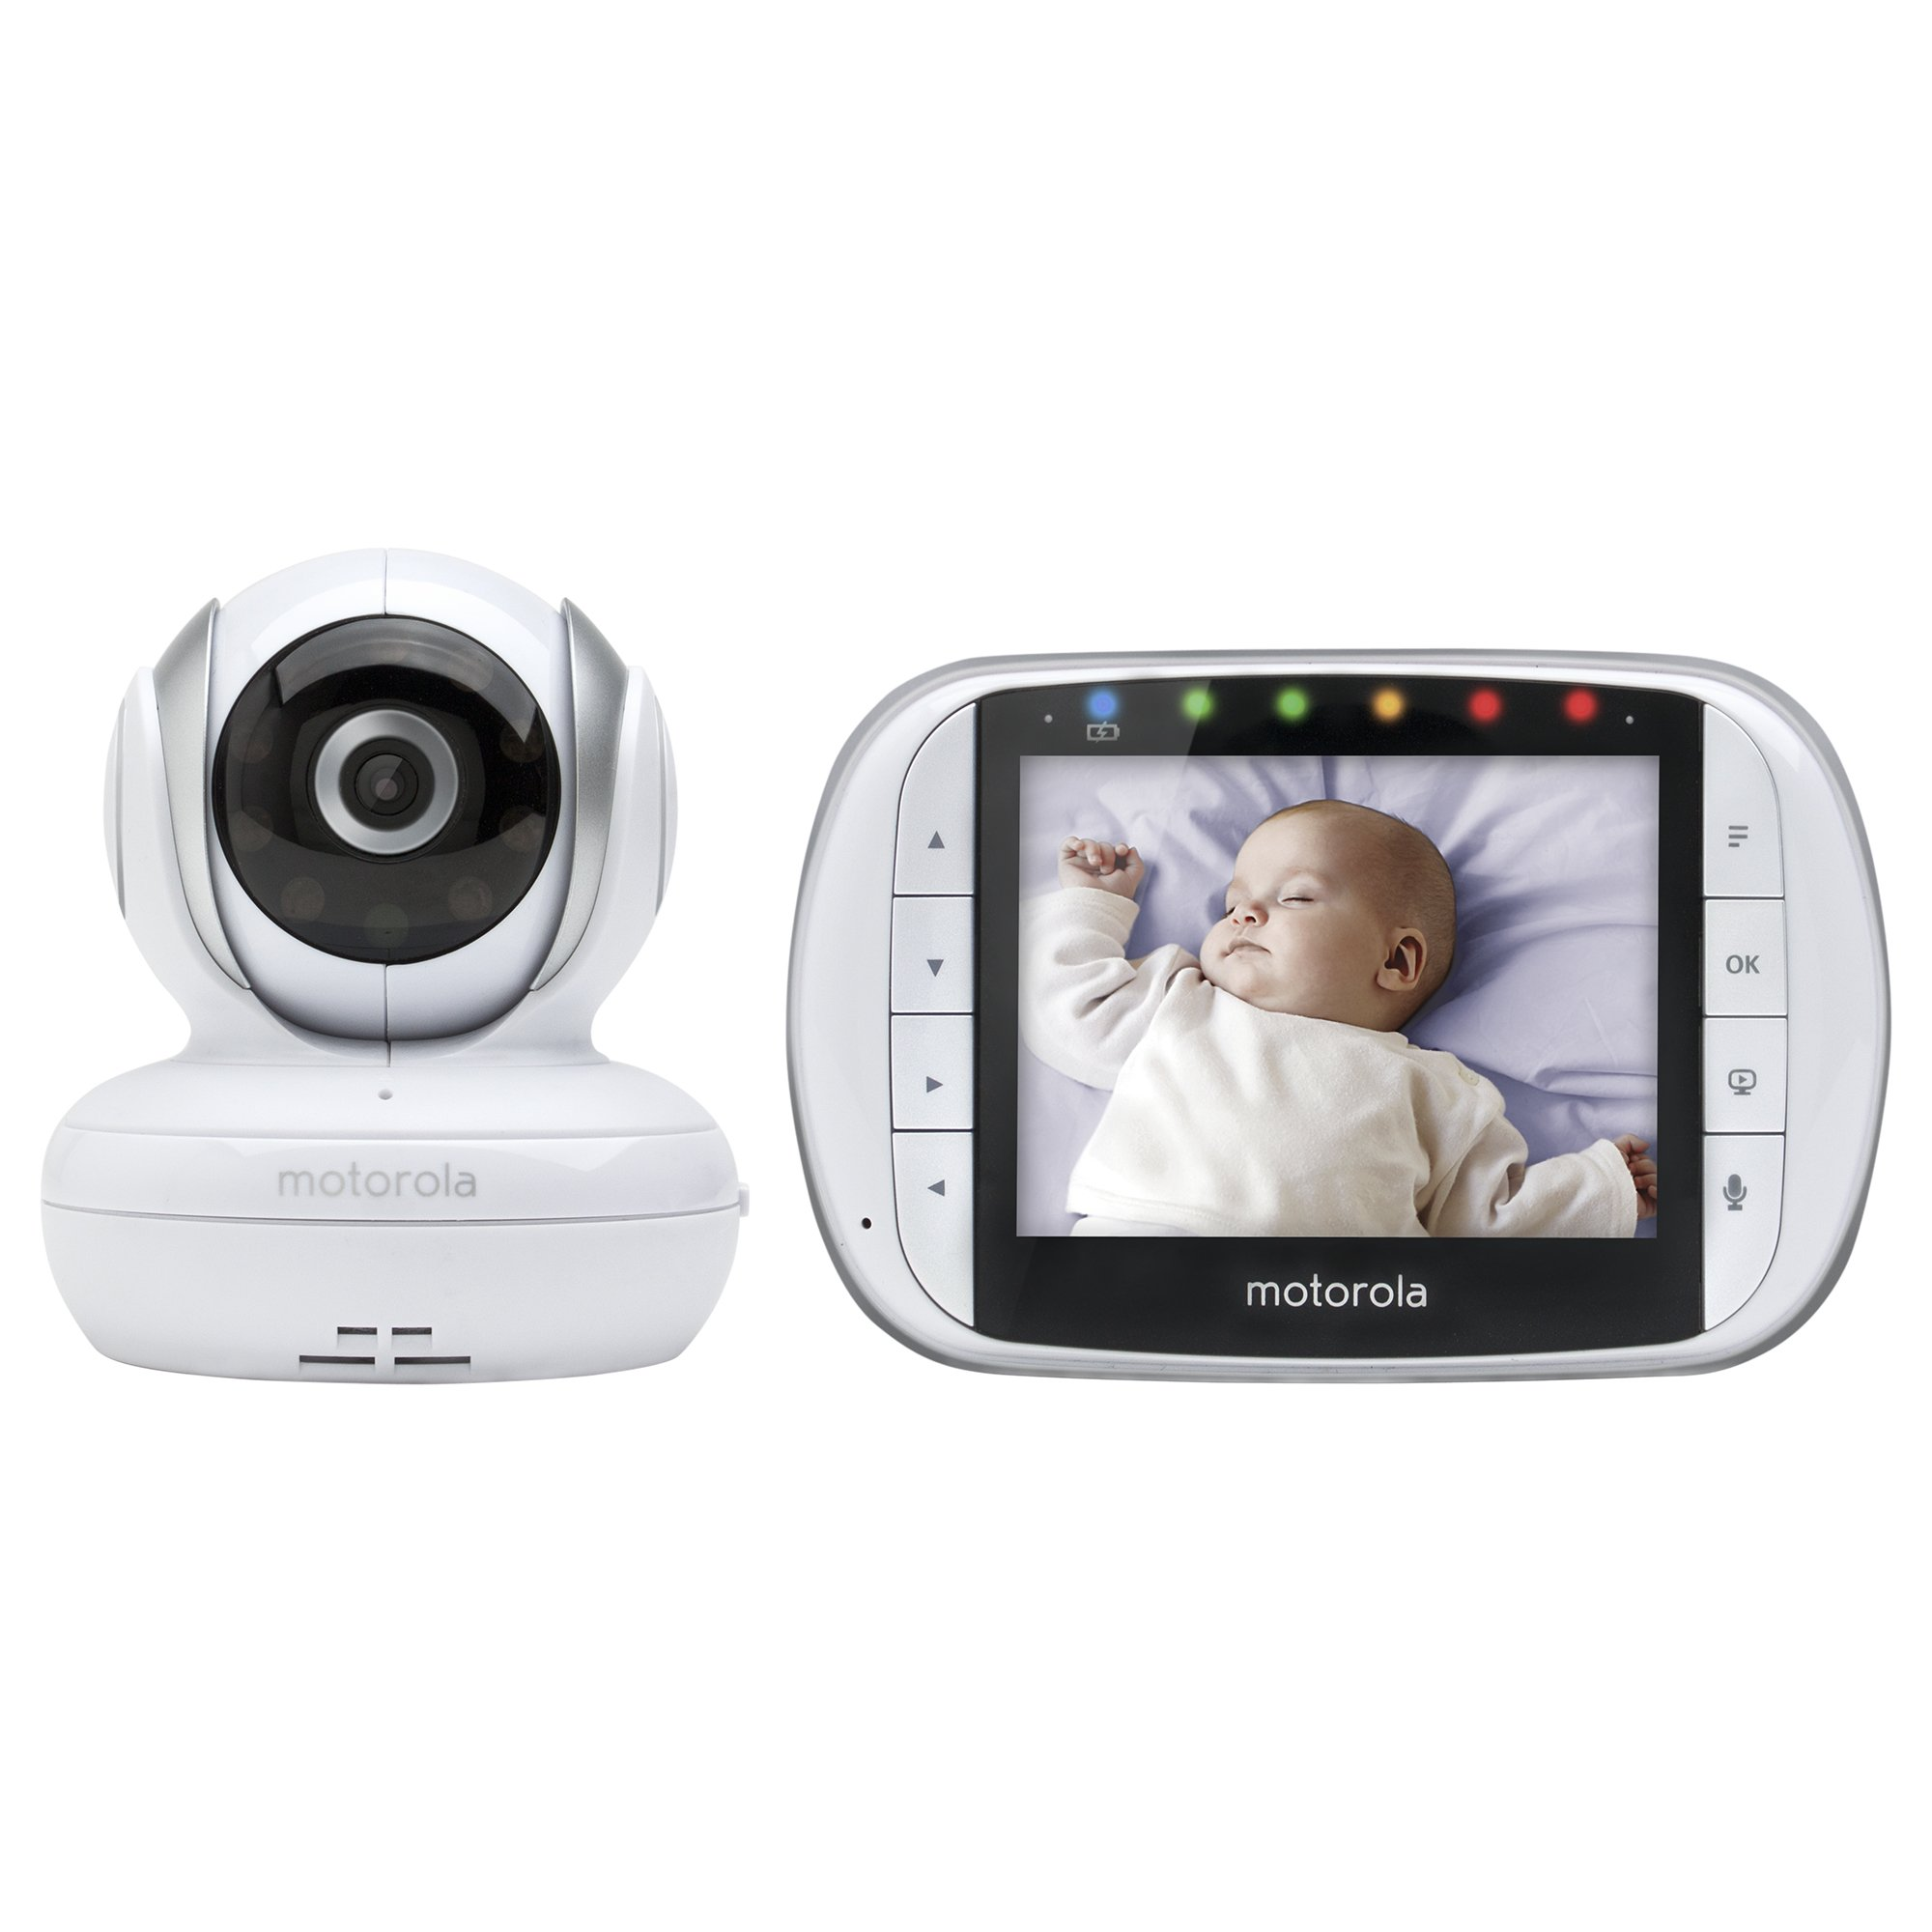 Motorola MBP33XL 3.5'' Video Baby Monitor with Digital Zoom, Two-Way Audio and Room Temperature Display